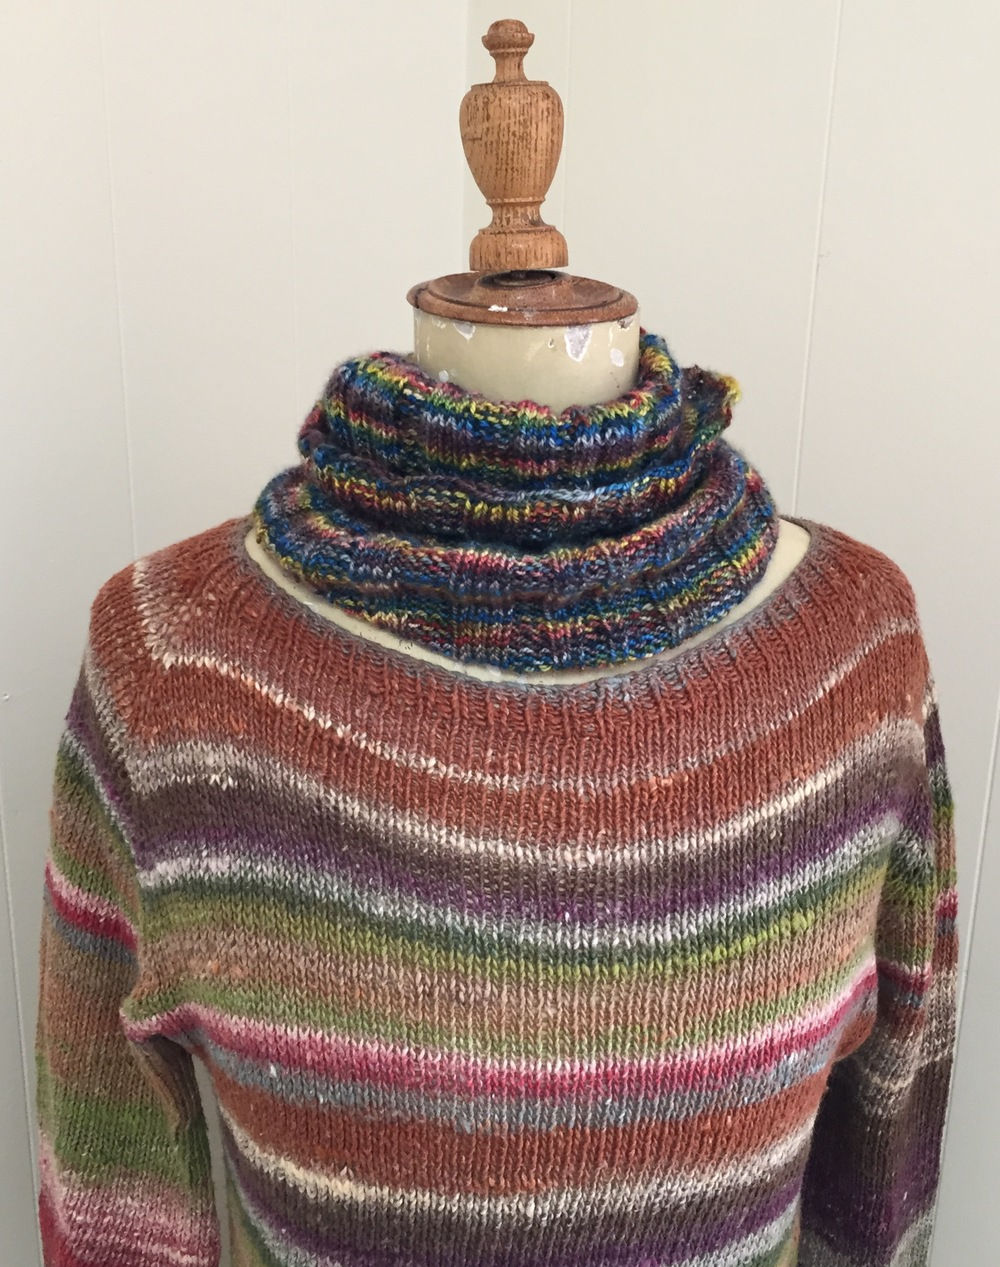 Josephine is wearing the COOPER cowl over a NORO TAIYO Lace sweater ... Miss Babs and Noro play nicely together ... never ceases to amaze me how it can all go together!